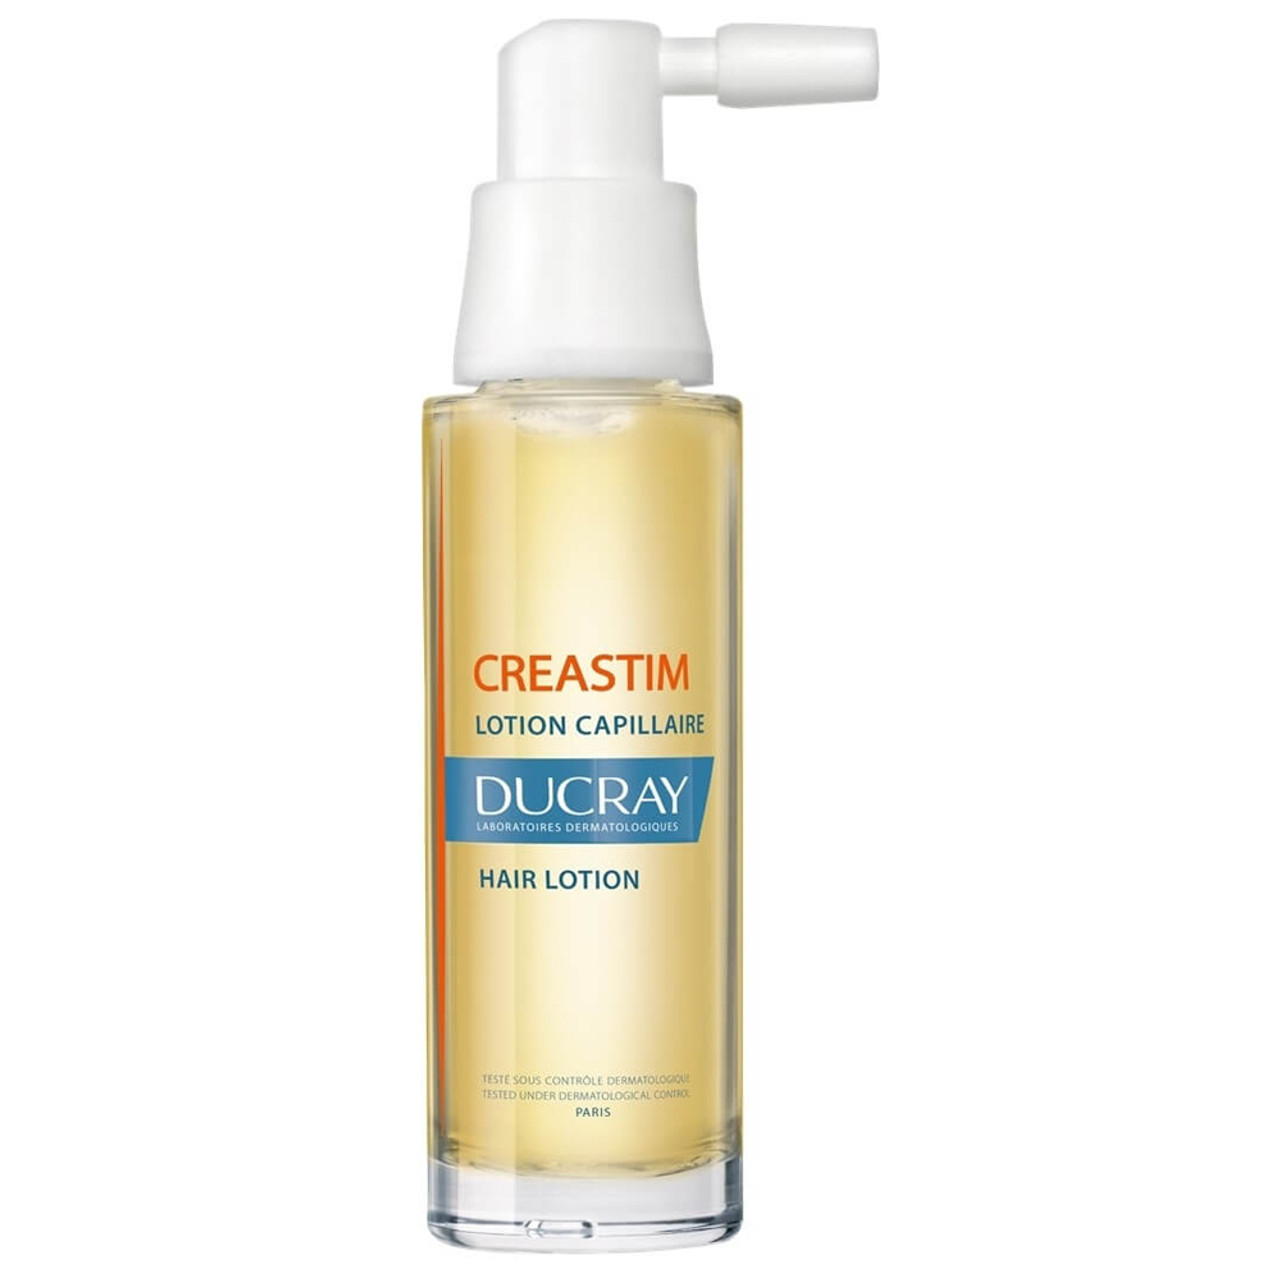 Ducray Creastim Hair Lotion